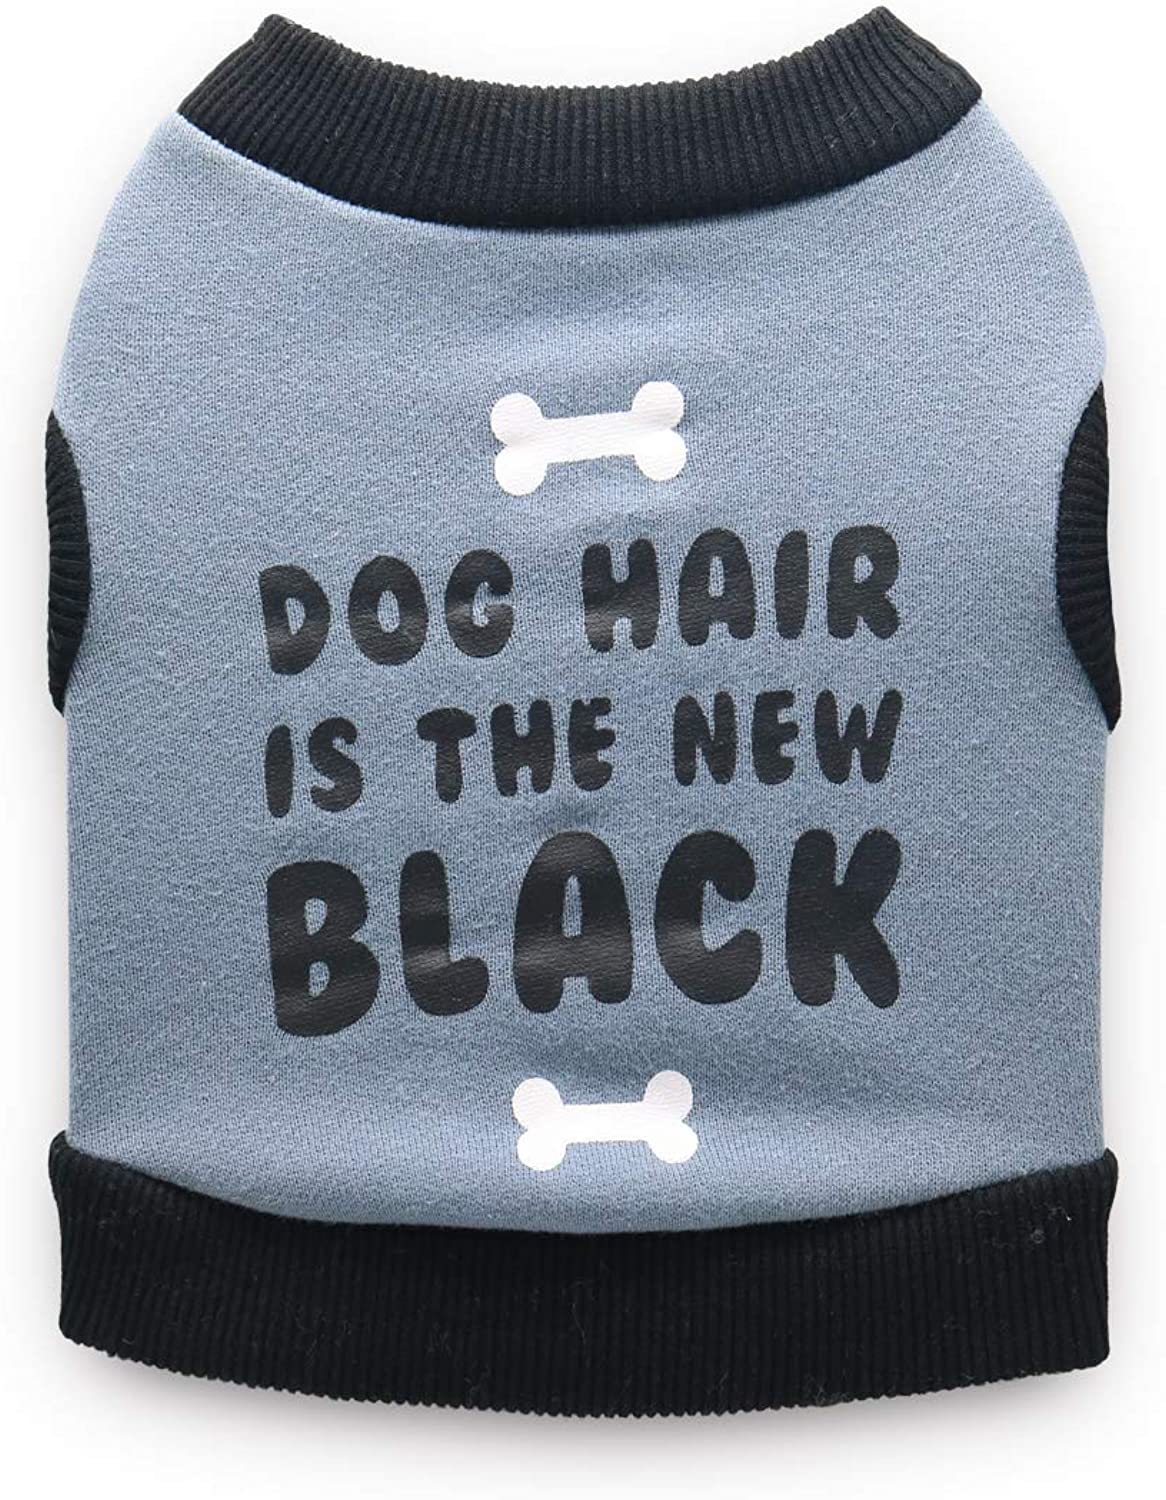 DroolingDog Dog Shirt Fleece Dog Hair is The New Black Vest Puppy Tshirts for Small Dogs, Small